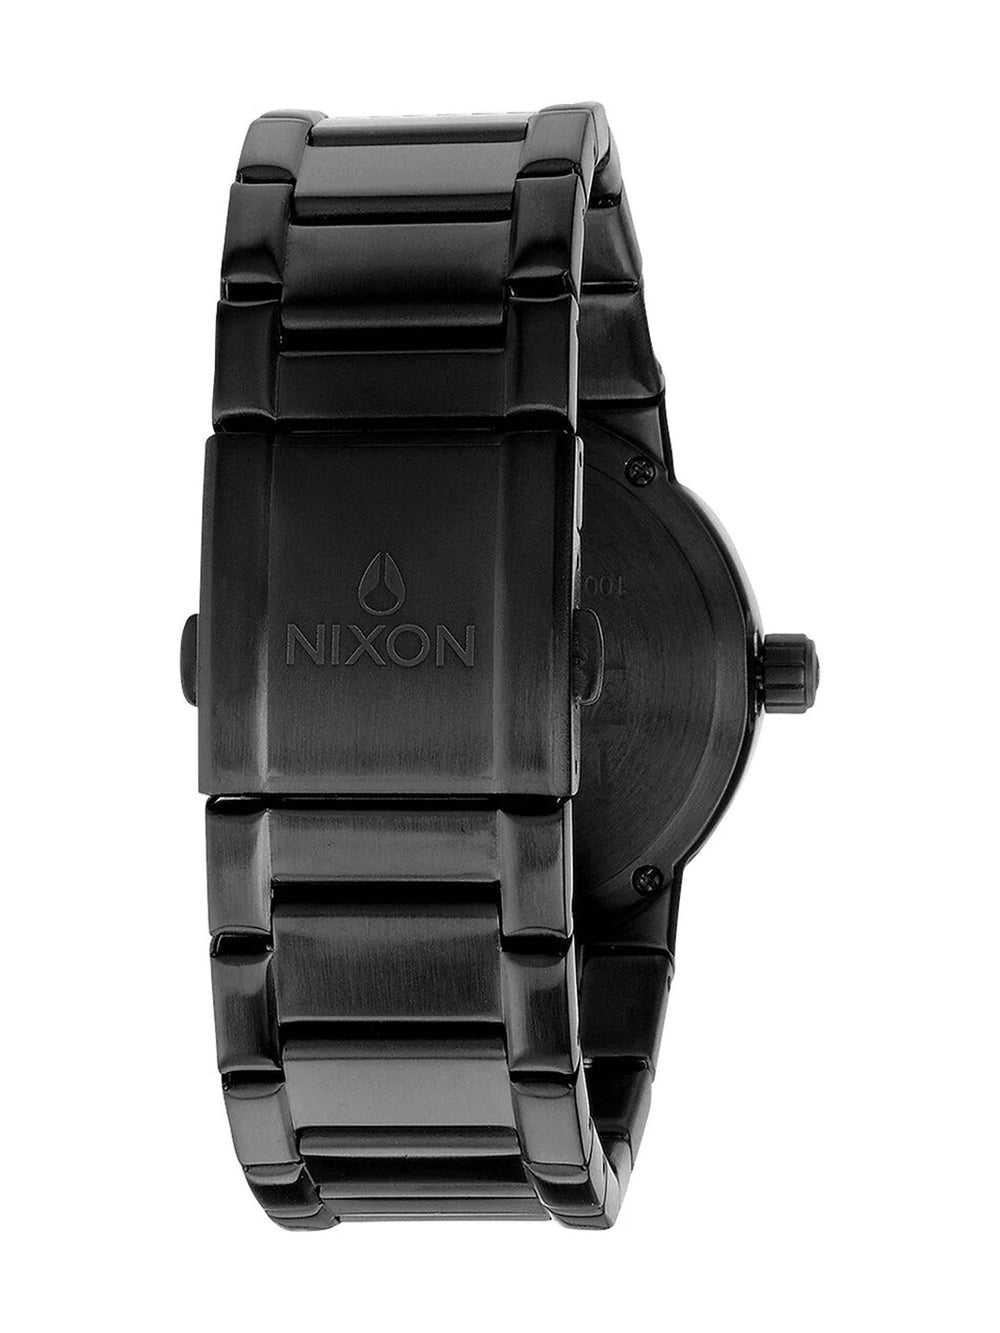 MENS CANNON - ALL BLACK WATCH